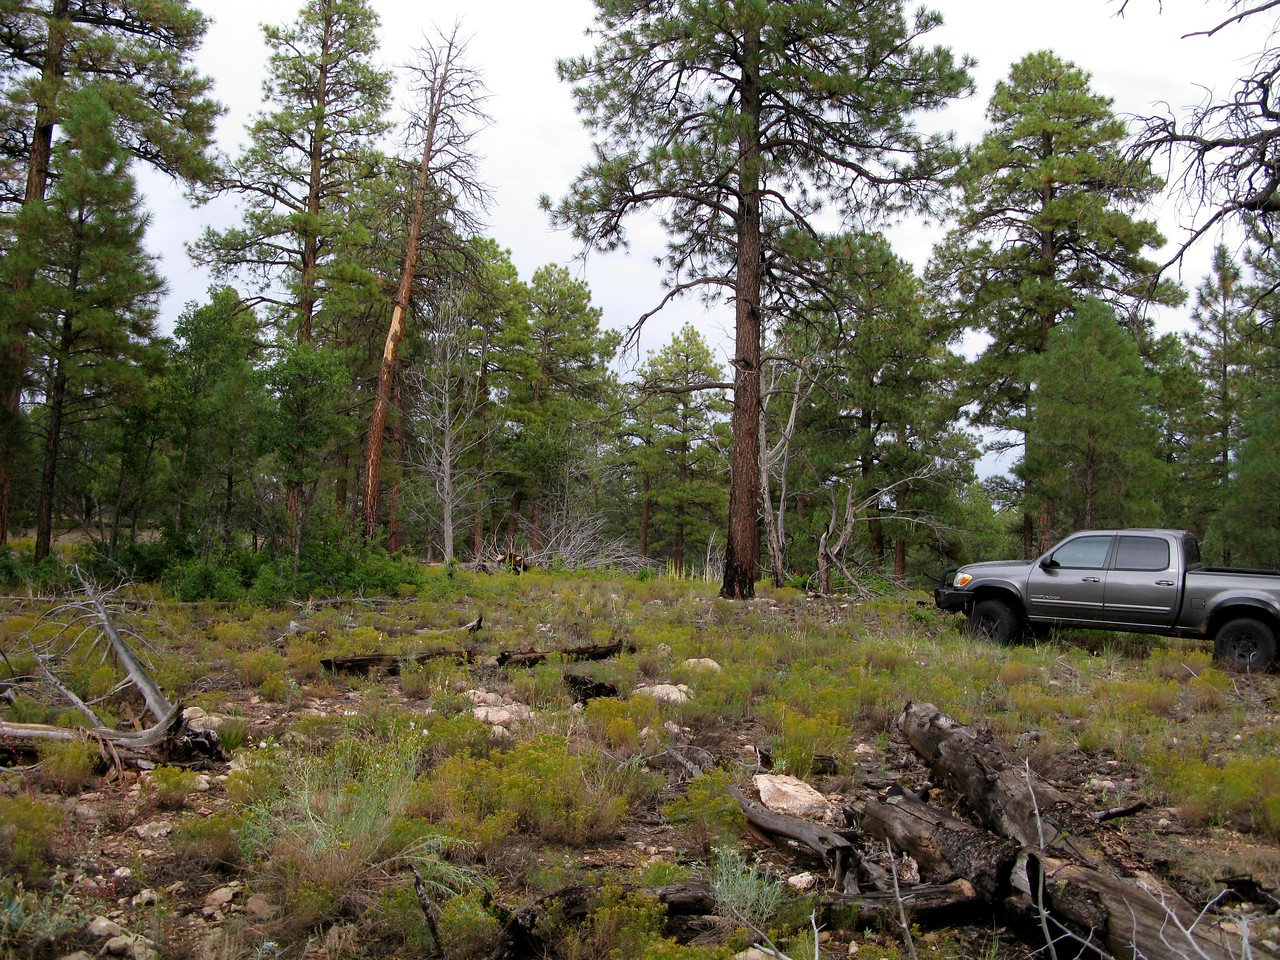 The crash site is located in a moderately forested area of the Kaibab National Forest on the Grand Canyon's south rim. <br /> <br /> The trees are comprised of a combination of Spruce and Ponderosa Pine which grow to an average height of 60-80 feet. The forest floor is rocky and covered with fallen trees.<br /> <br /> The record is not too promising. Most aircraft that crash in this terrain have resulted in fatalities.